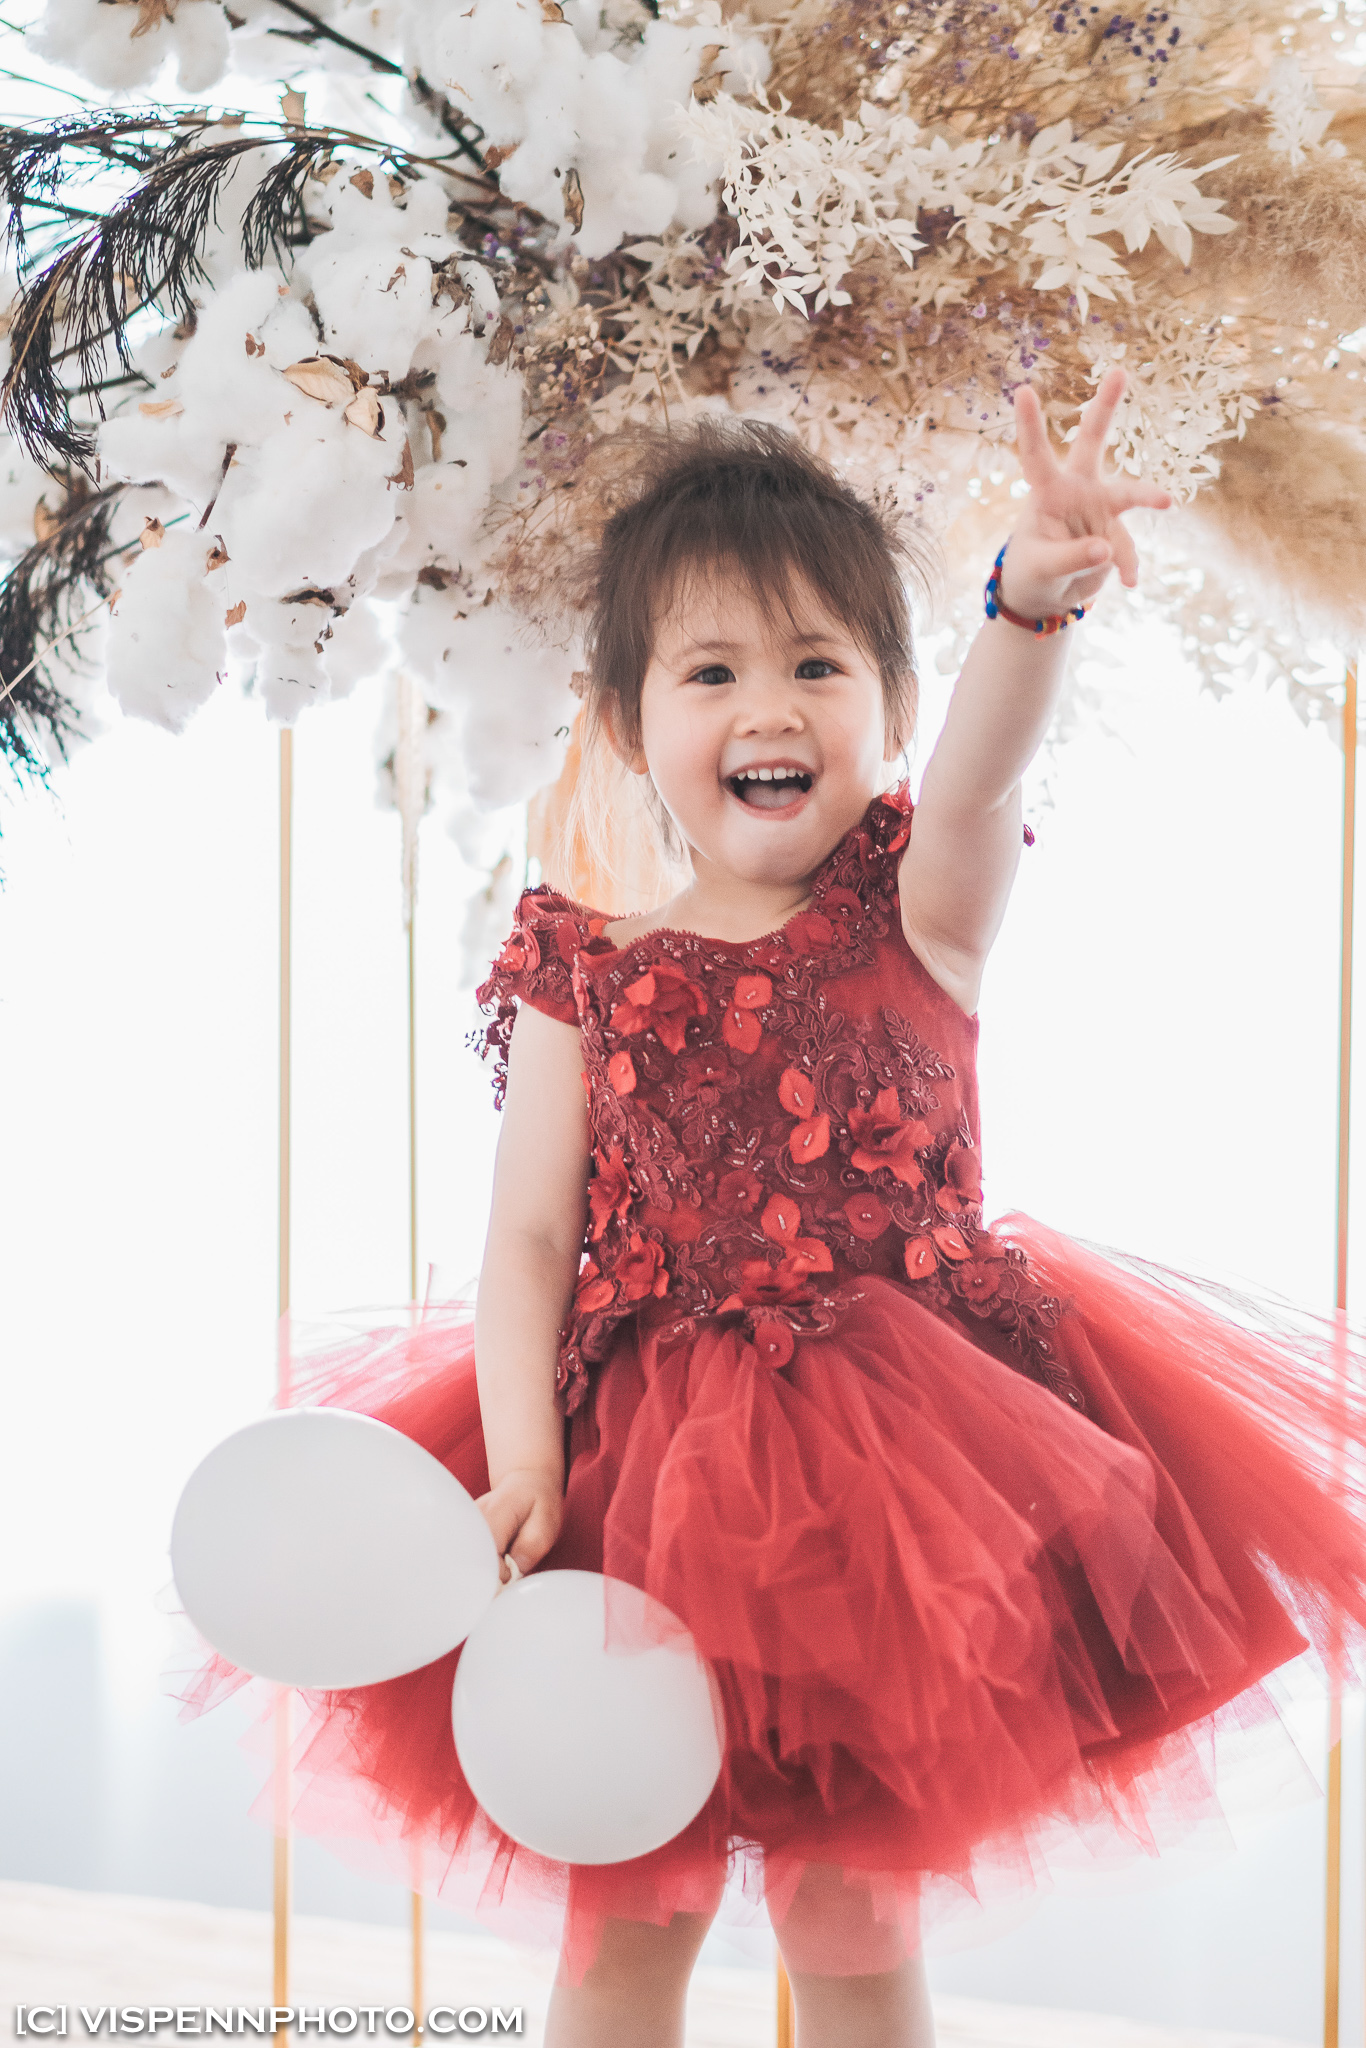 Melbourne Baby Family Birthday Party Photographer 墨尔本 百日宴 满月宴 周岁宴 摄影 VISPENN ALINA 0263 Sony VISPENN